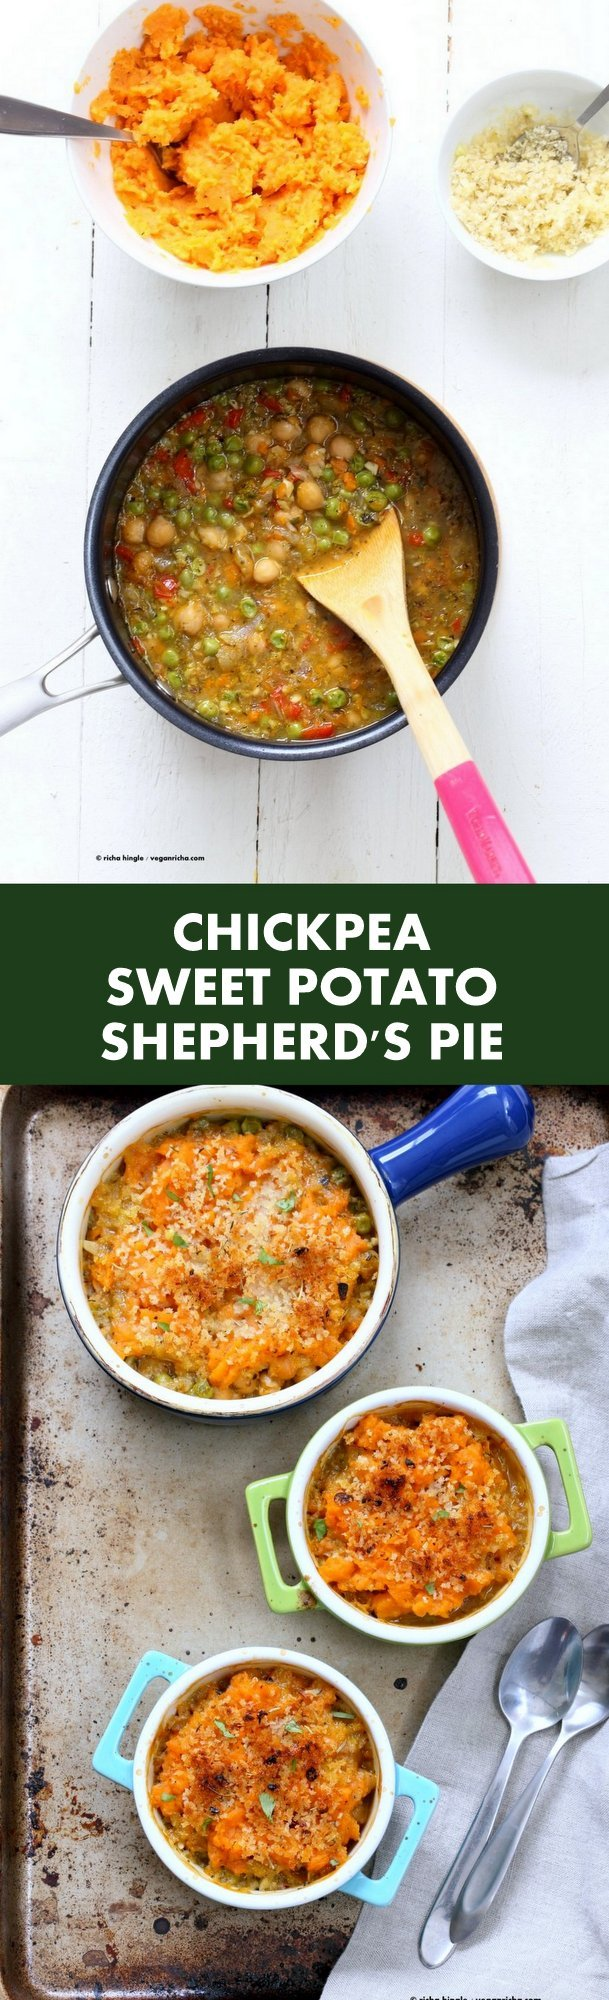 Vegan Shepherds Pie with Chickpeas and Sweet Potato mash. Crusted with breadcrumbs, garlic and herbs. 1 hour easy Vegetarian Shepherds Pie. Vegan Nut-free Soy-free Recipe. Can be gluten-free | VeganRicha.com